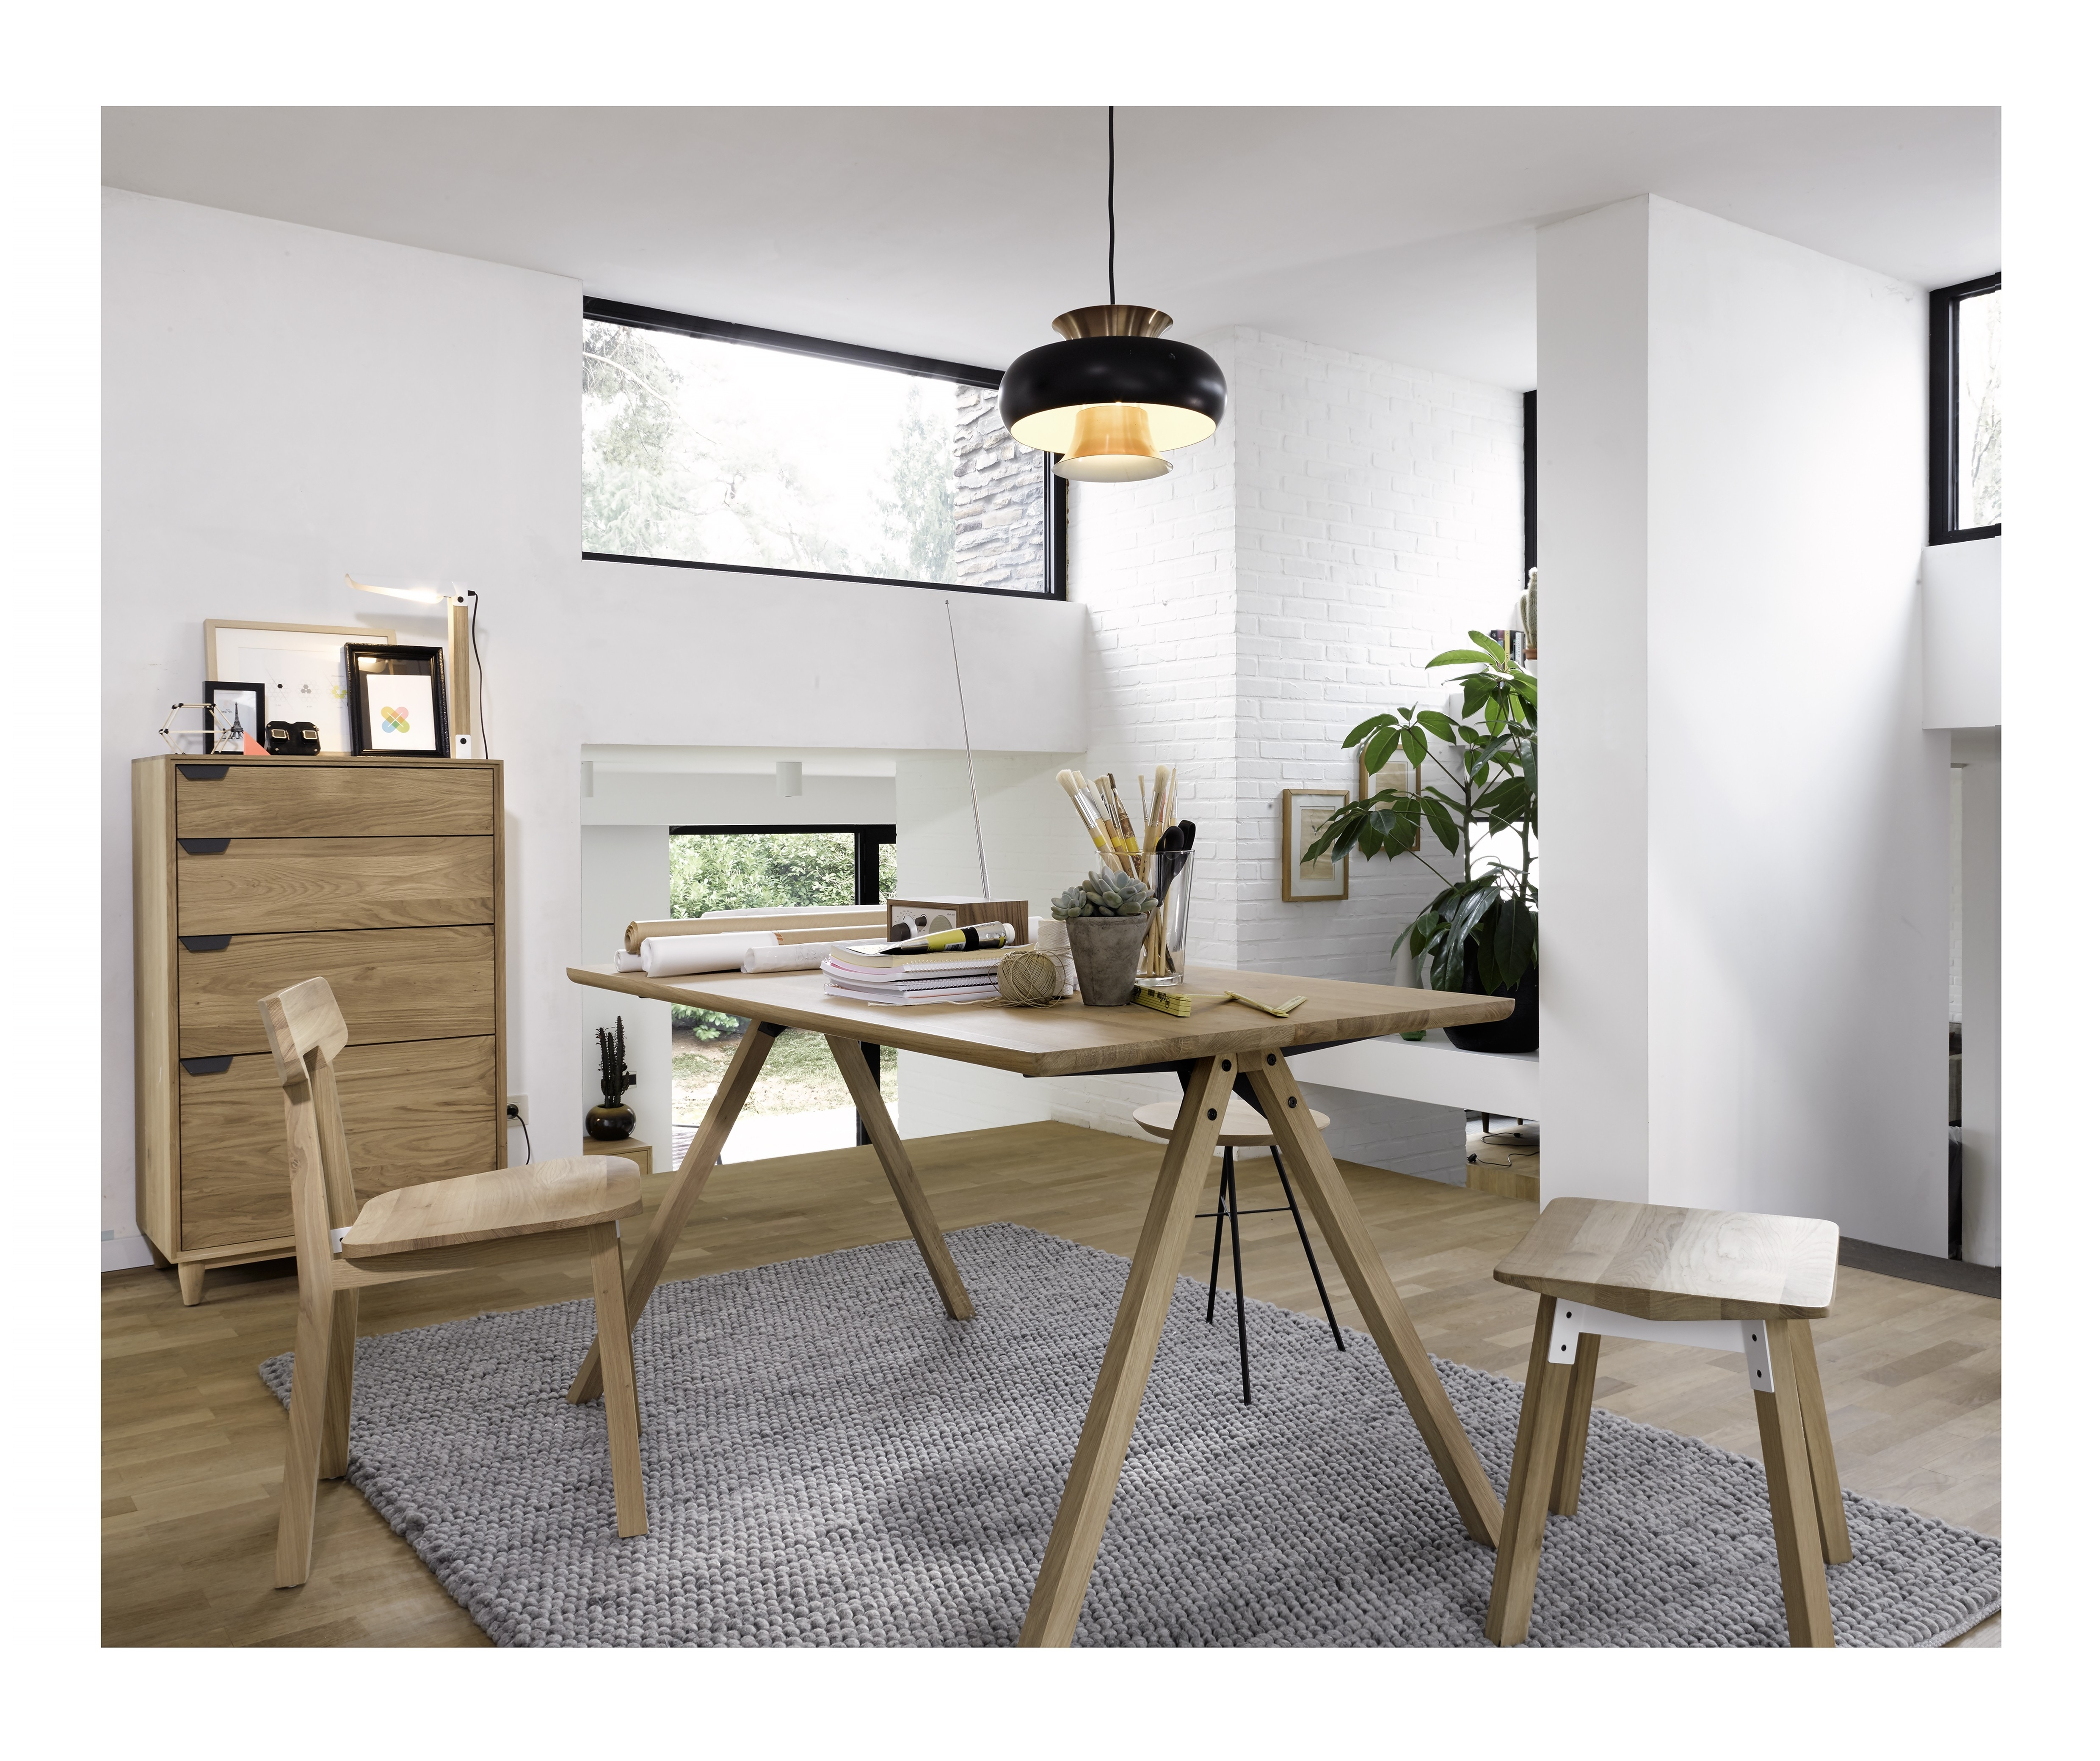 180Cm Dining Tables within Well-known 180Cm Dining Table - Dining Tables Ideas